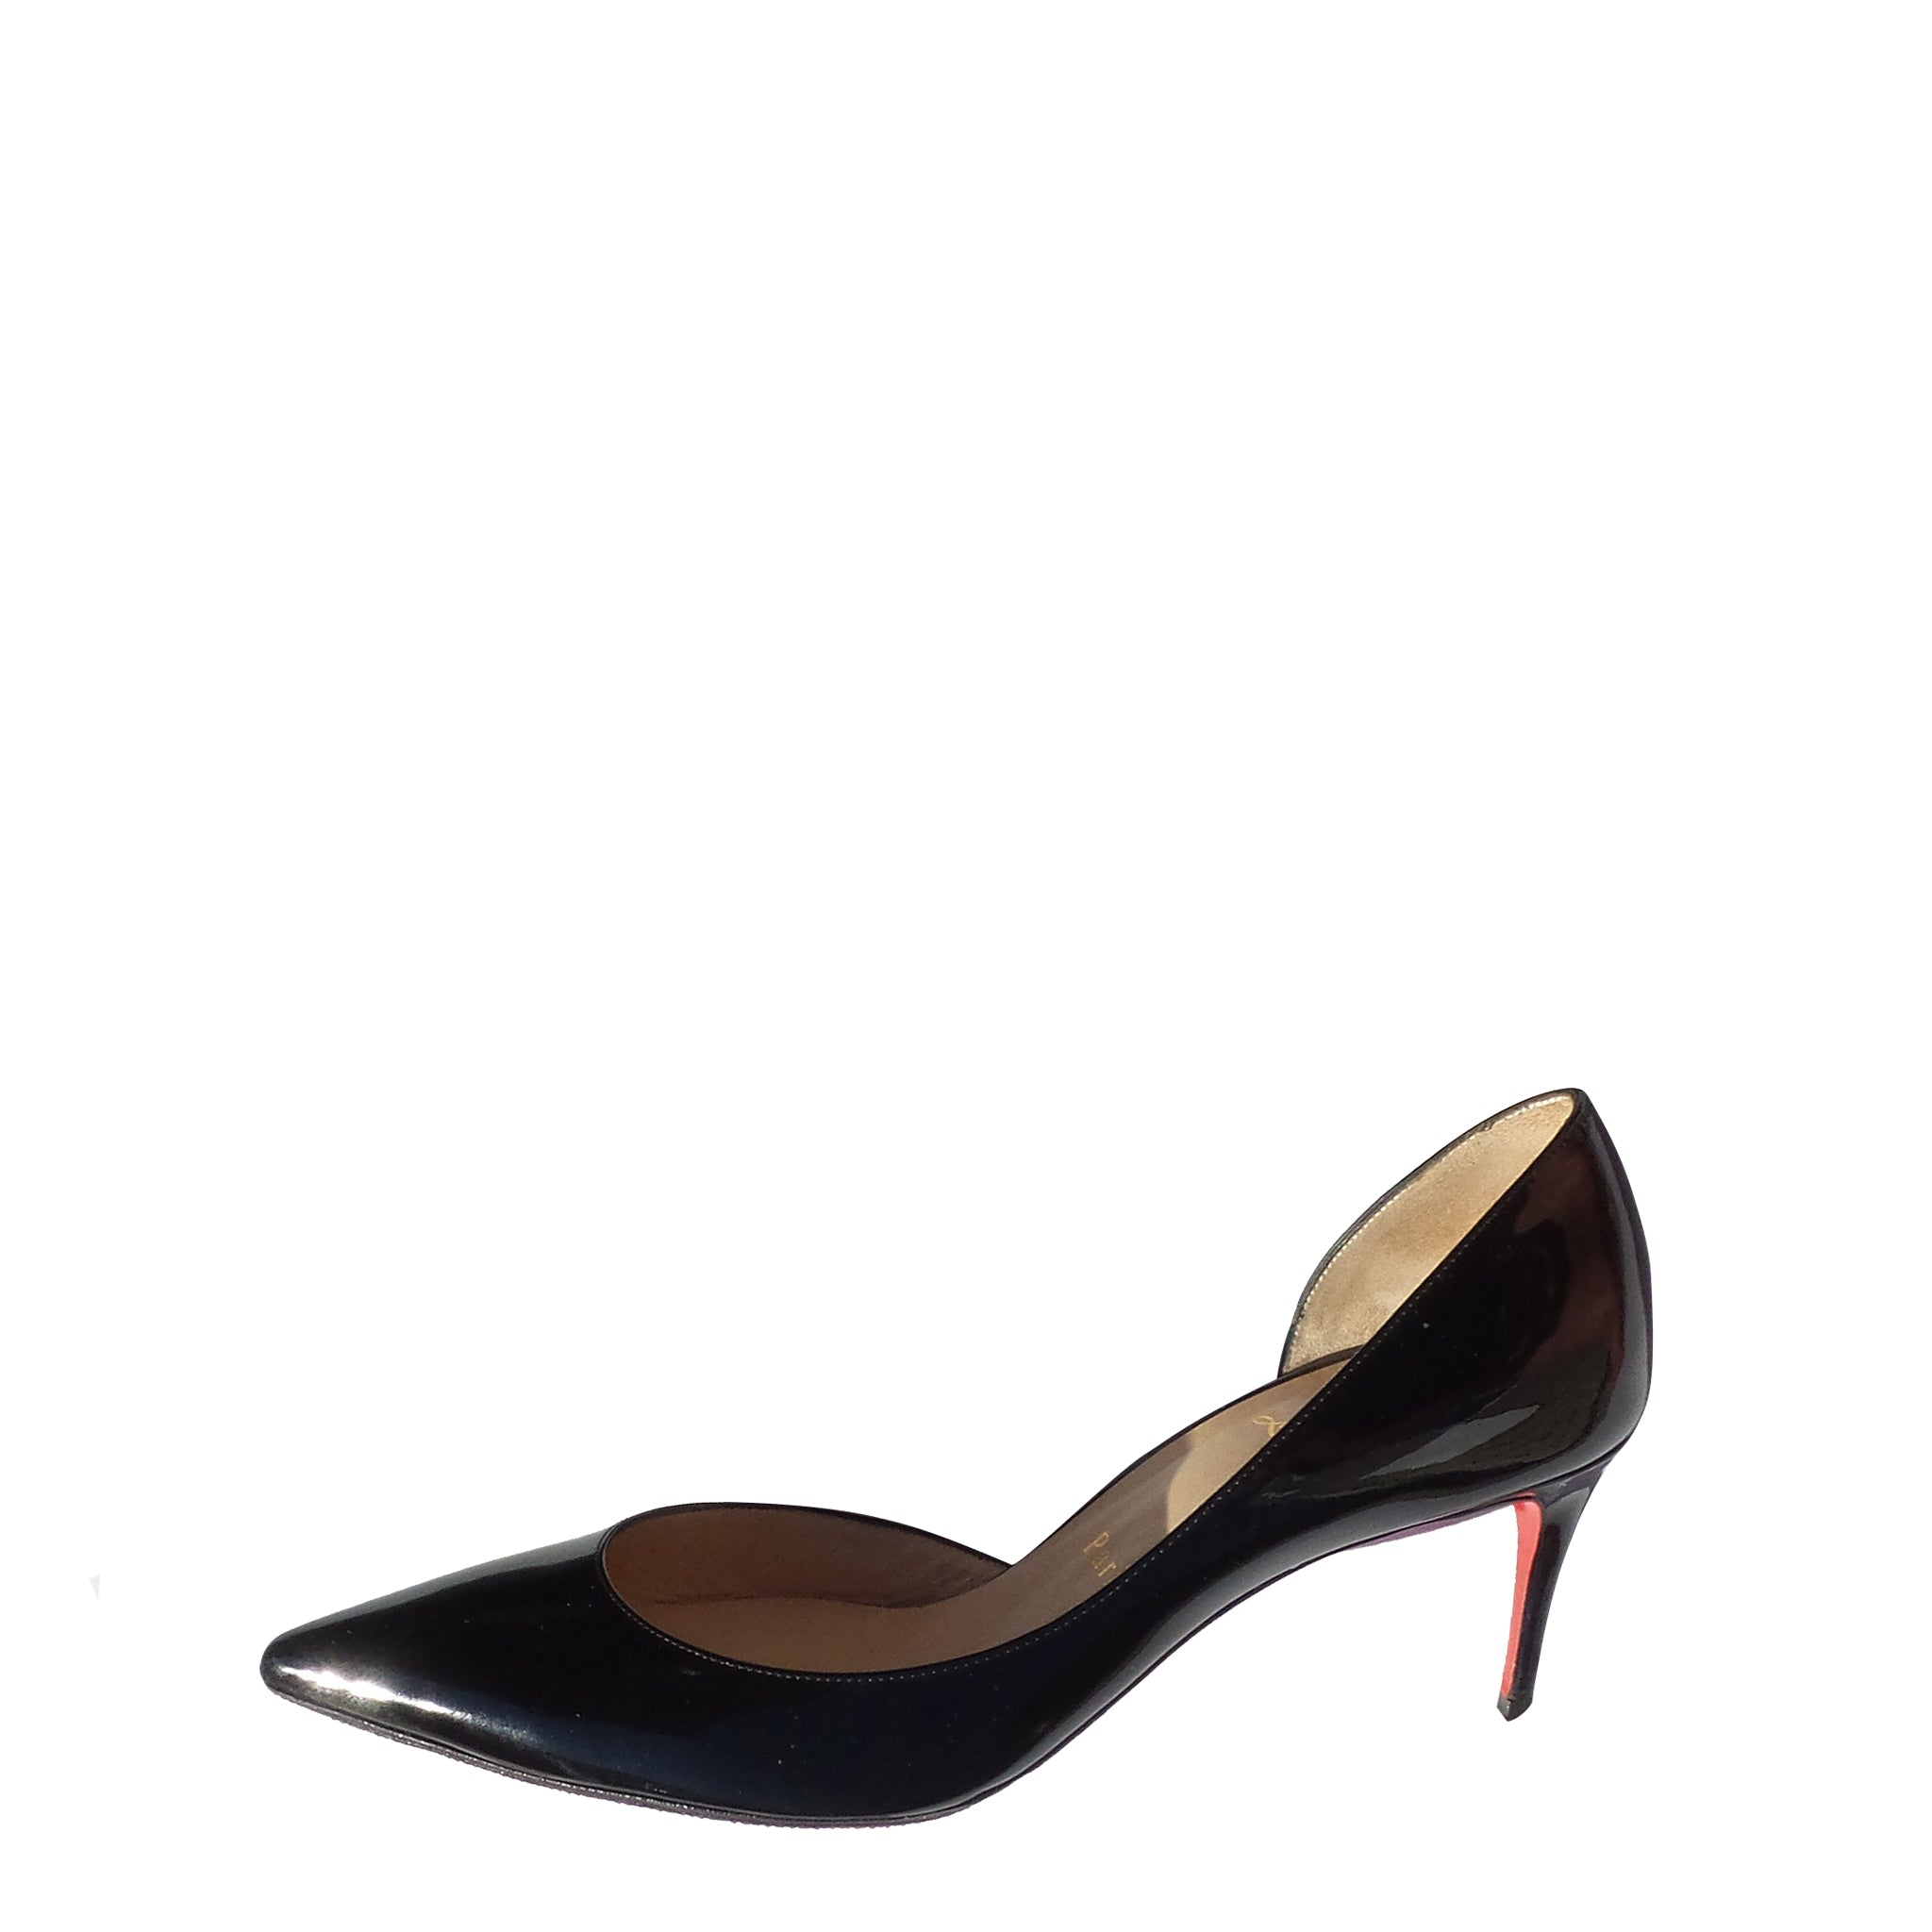 9f9e6e52202  Sold  CHRISTIAN LOUBOUTIN Iriza 70 Black Patent Leather Pointed Toe d –  Encore Resale.com